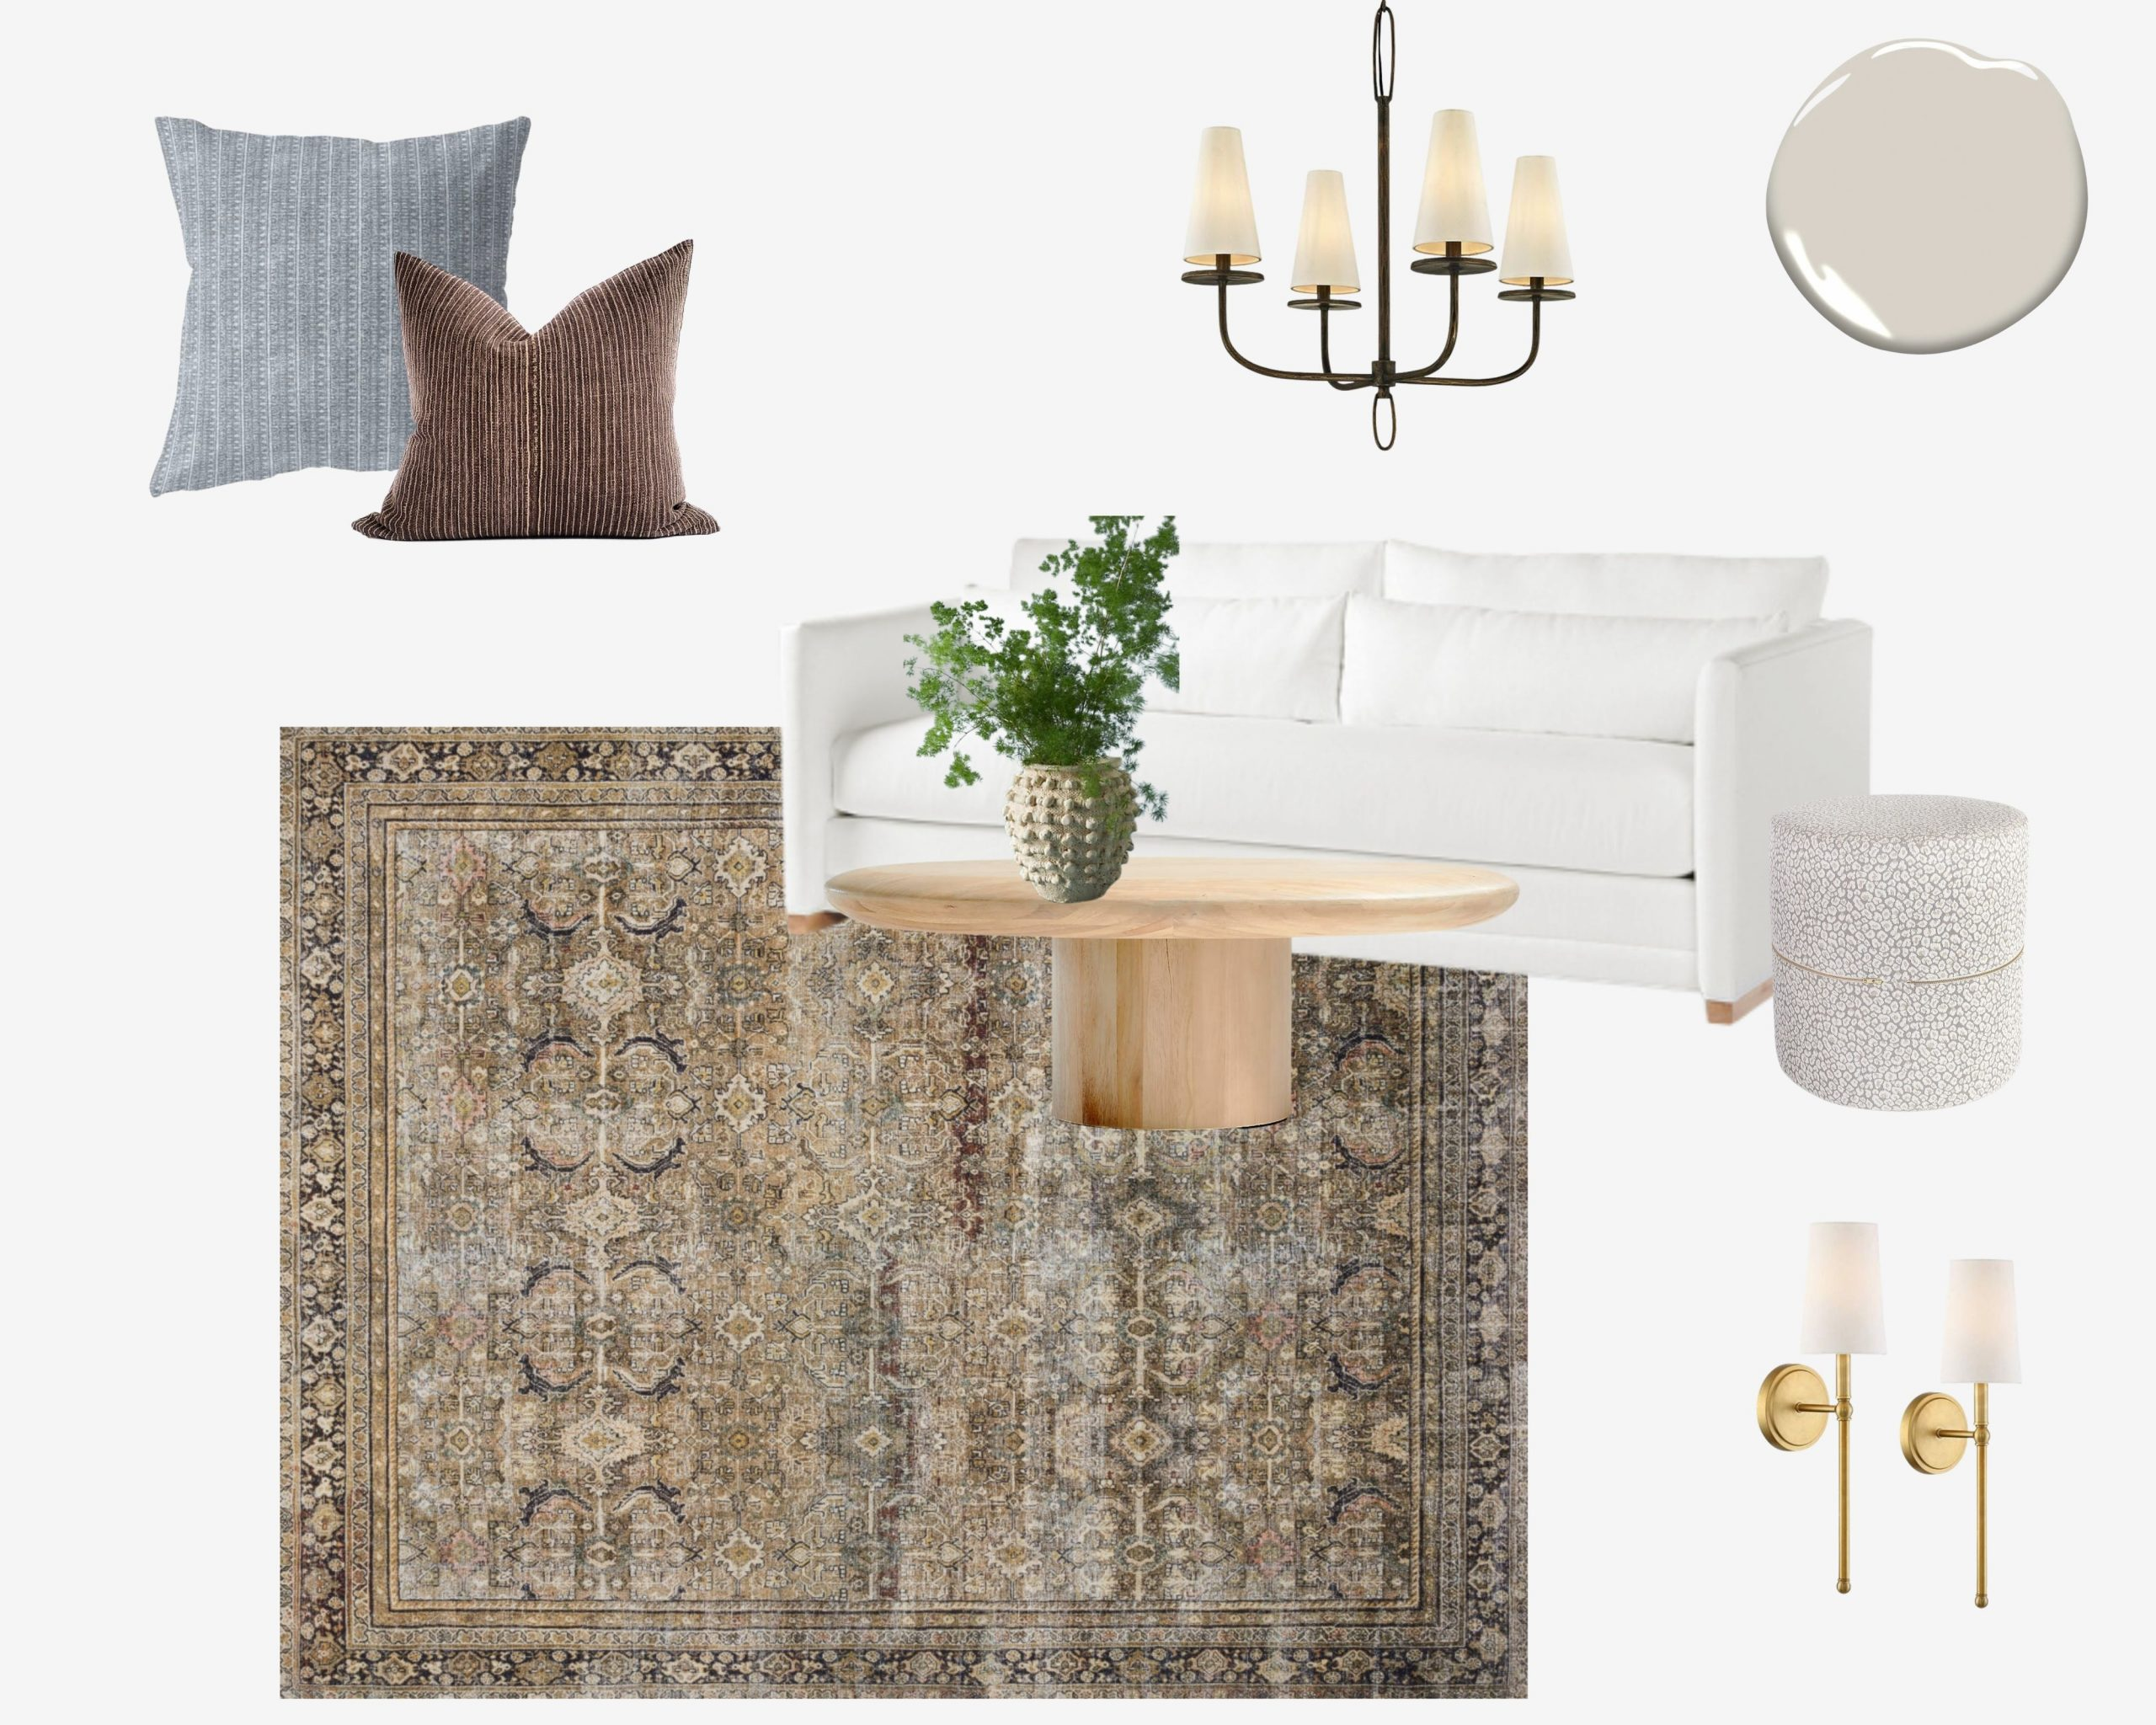 Jessica Sara Morris Virtual Design. I specialize in creating timeless and cozy spaces that will embody your personality while adding texture, functionality and beauty. Campbell River, BC